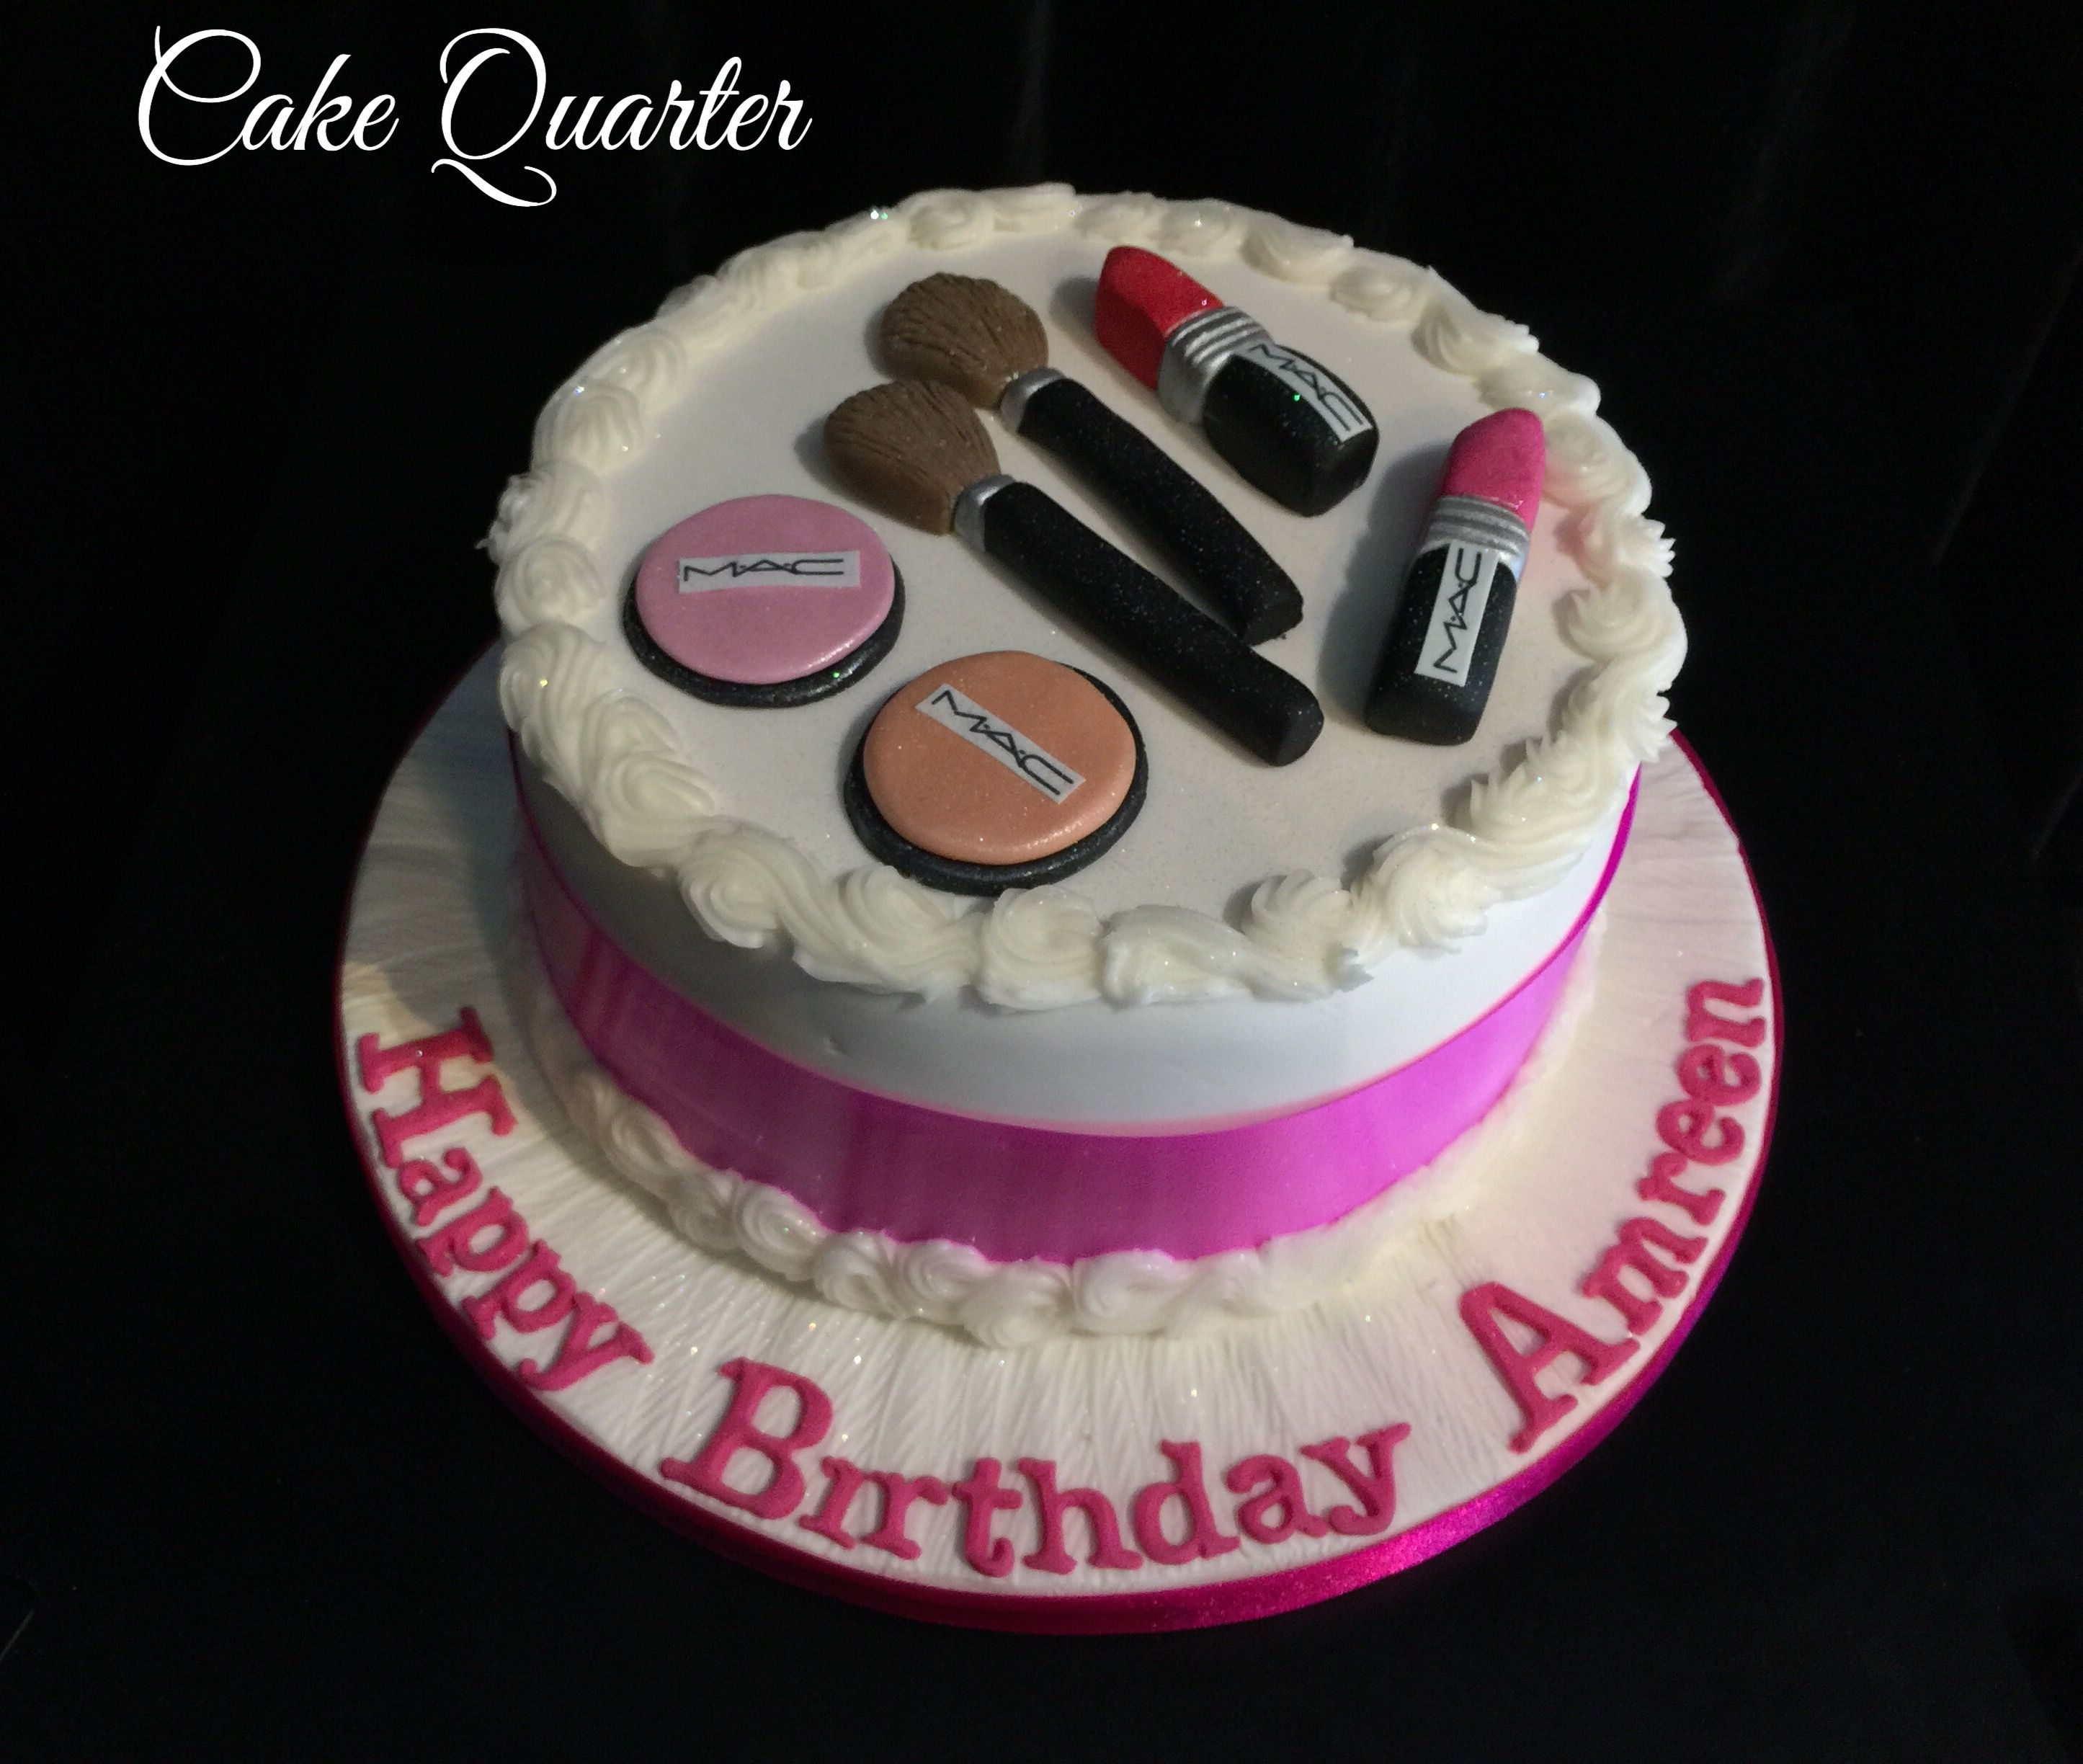 Make Up Birthday Cakes Personalised Your Day Cake Designed